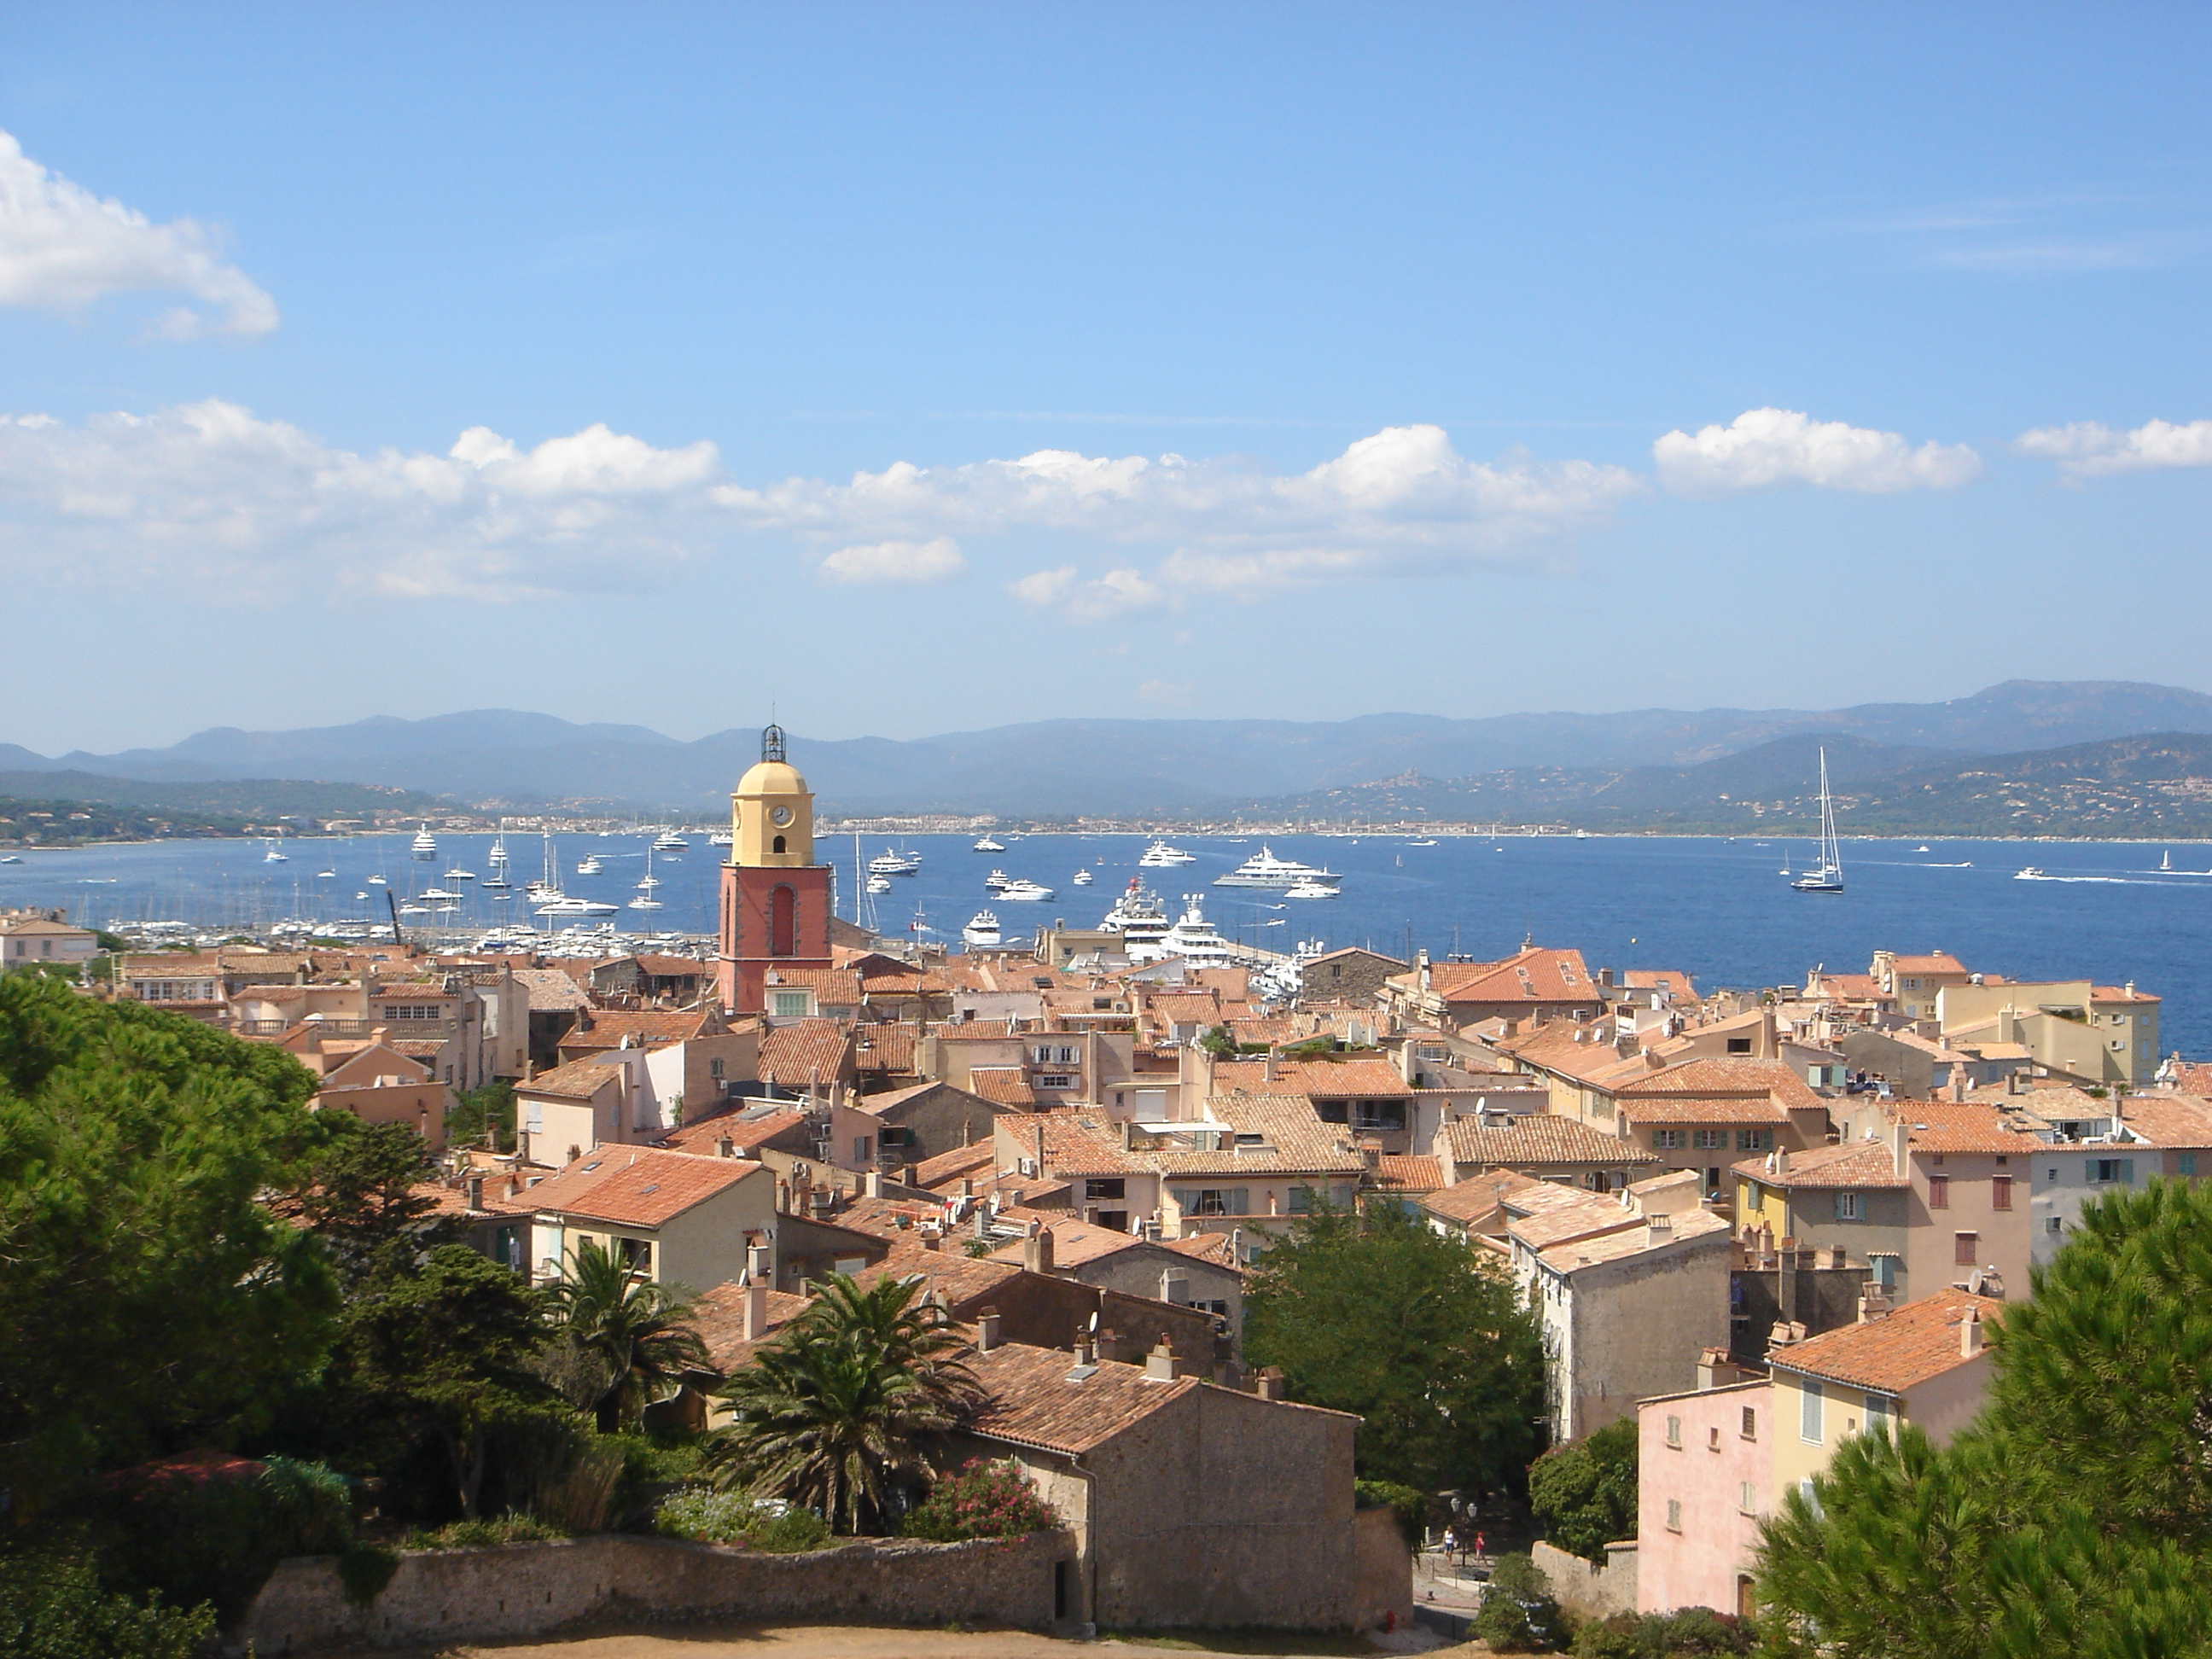 https://upload.wikimedia.org/wikipedia/commons/b/b5/Saint_Tropez_Ville.jpg?uselang=fr